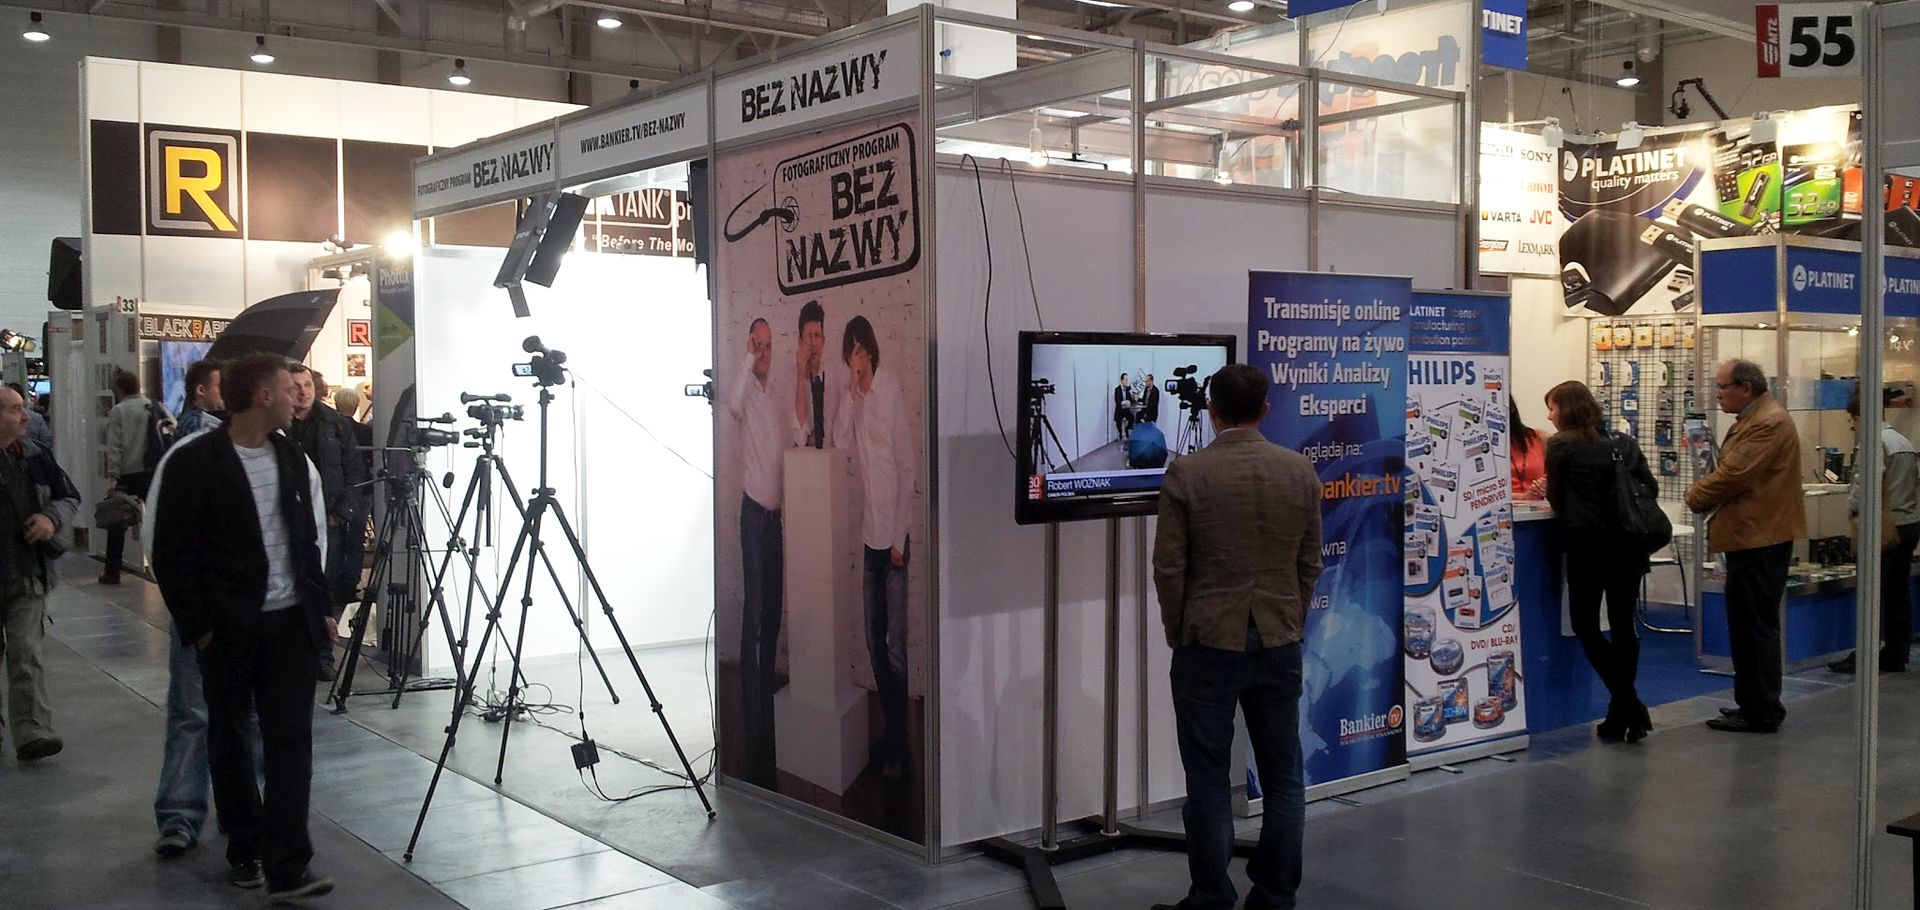 Photo Trade Show Lodz. Live streaming studio manager and program host (2012)